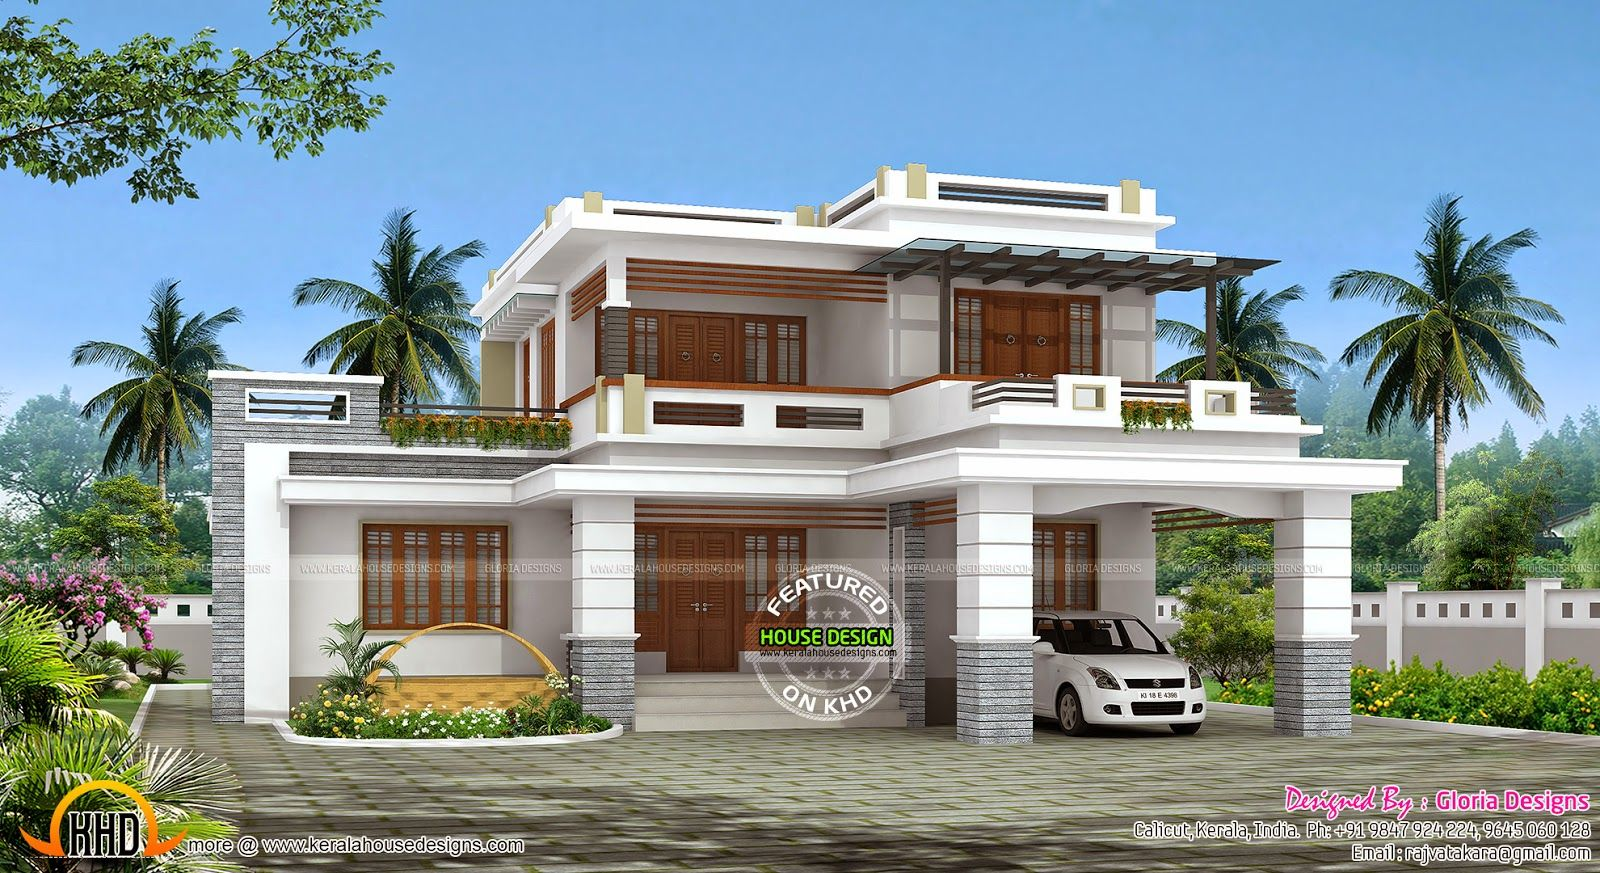 Small house design on terrace house plan design house design ideas 0d - Floor Plan North Indian House Kerala Home Design Floor Plans Container Home Floor Plans Kerala Home Design Plans Home Design Pinterest Home Design